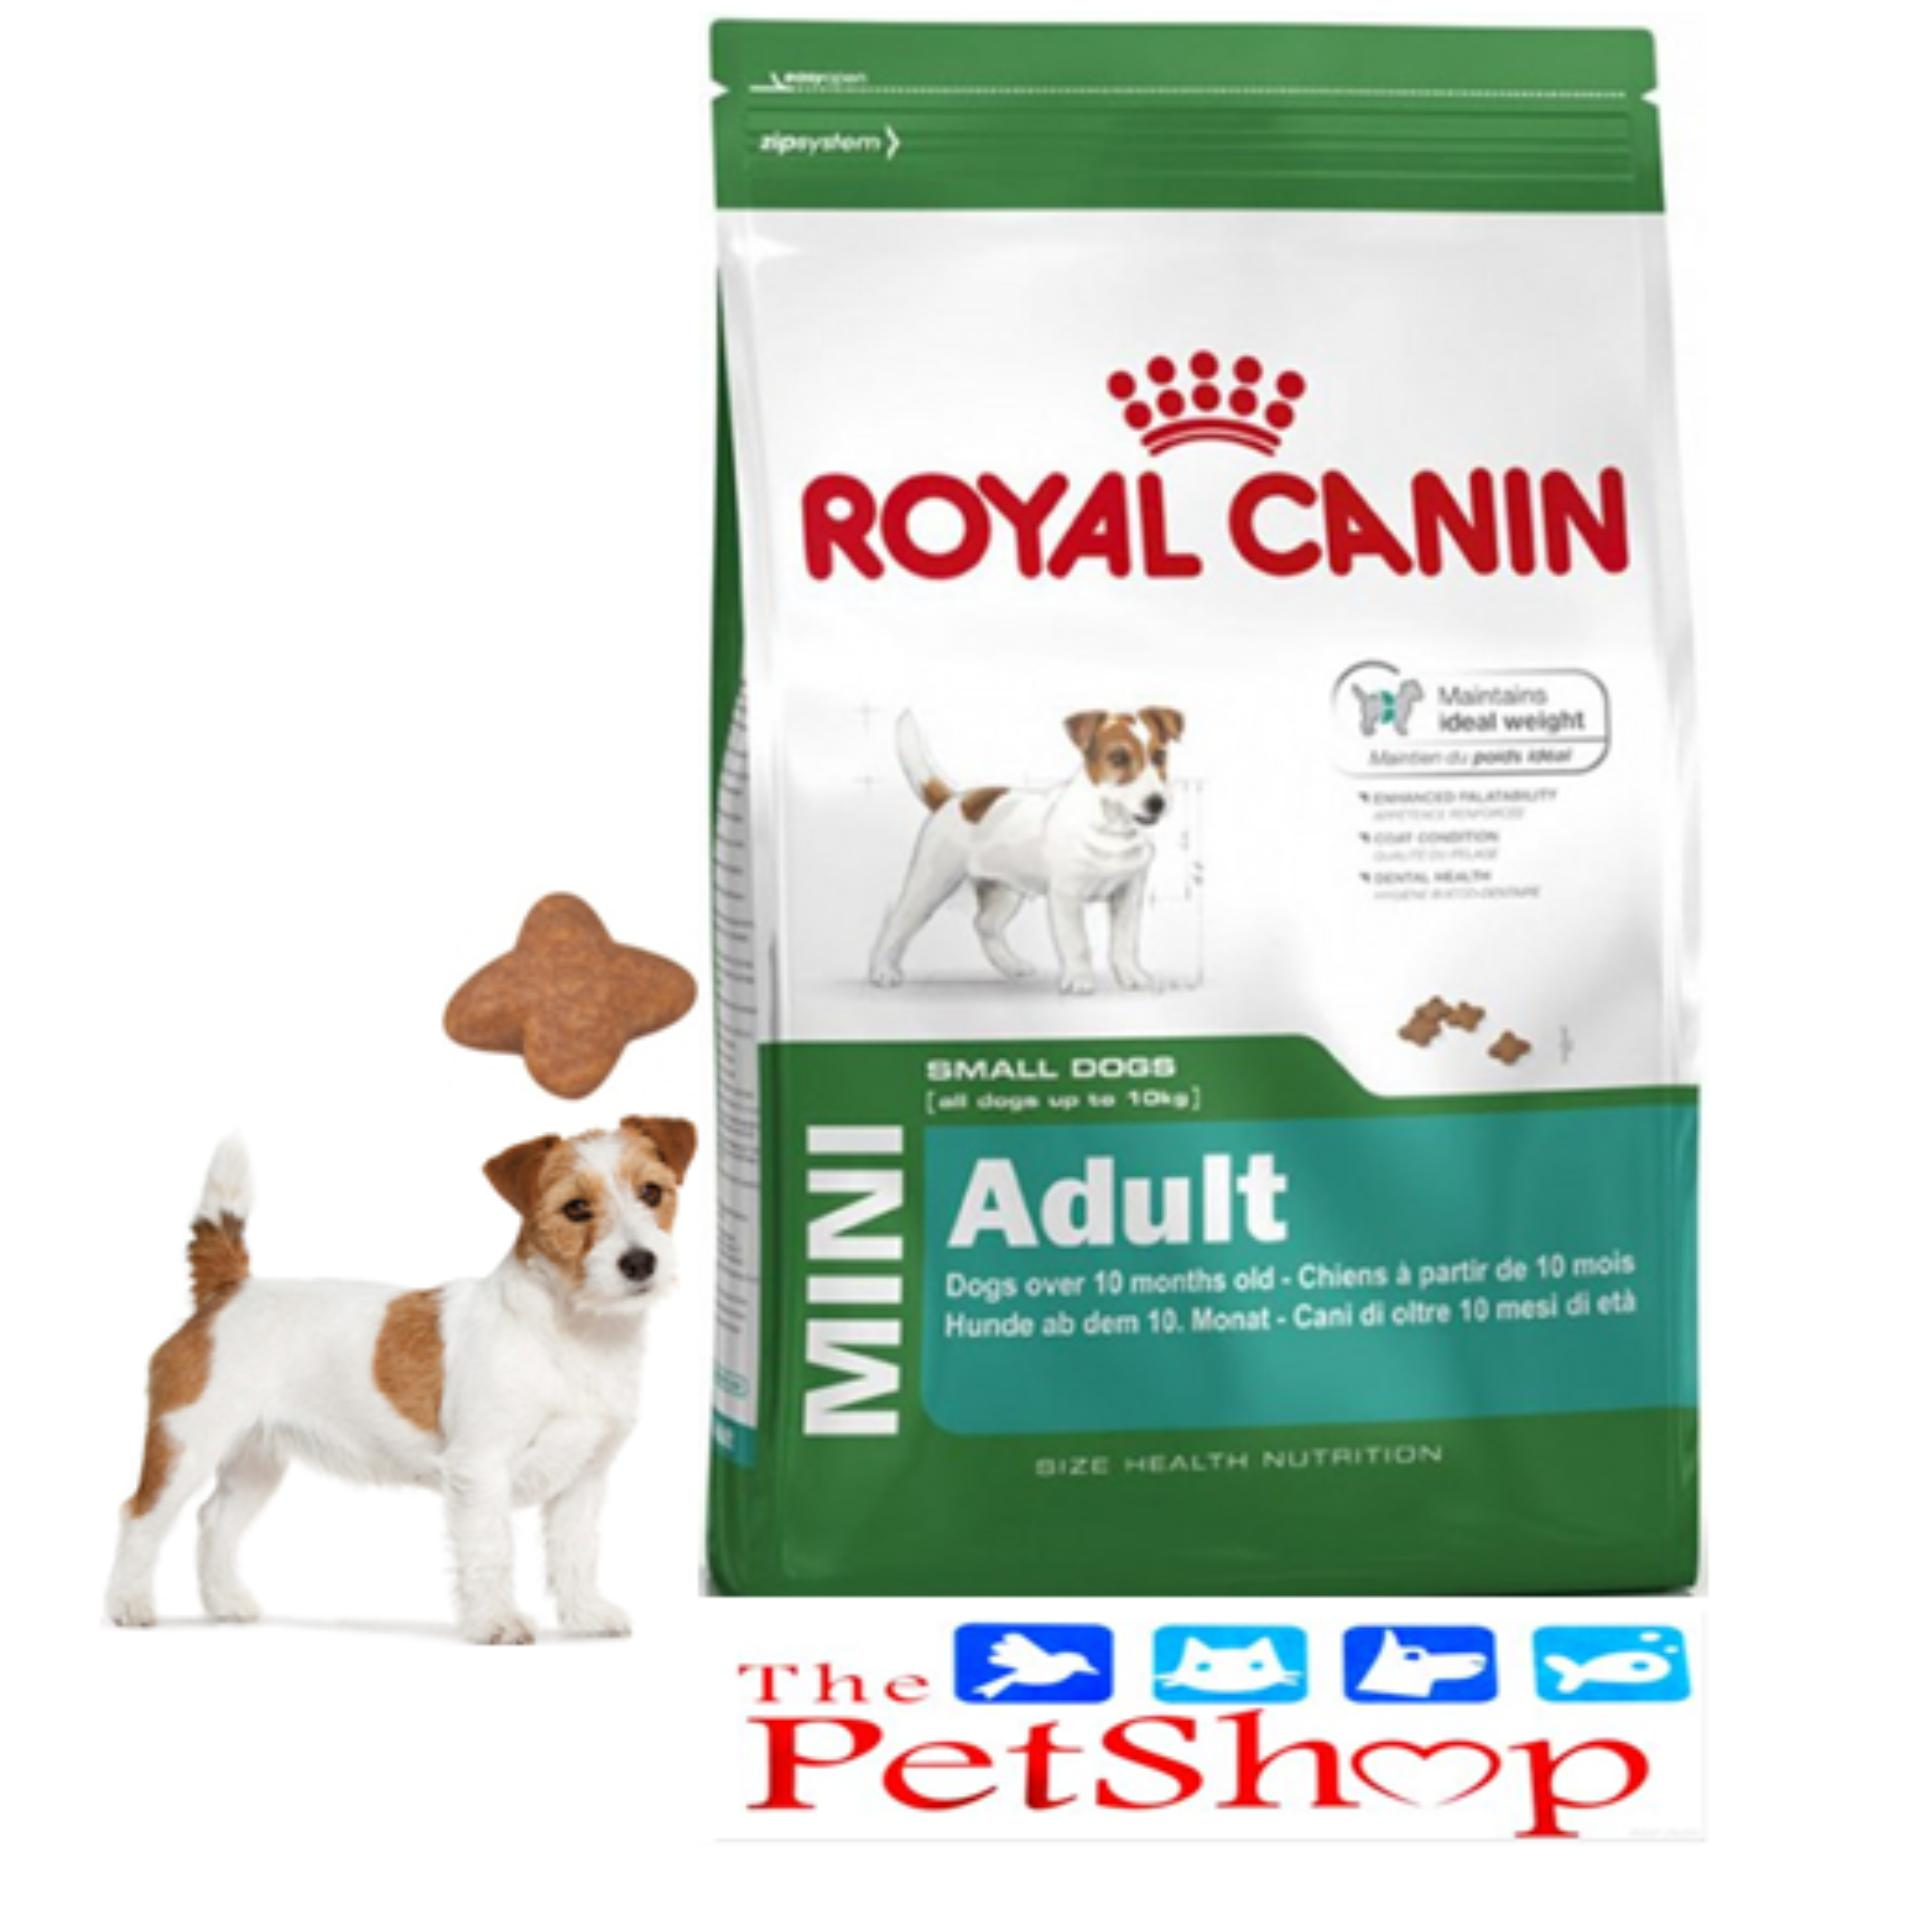 Royal Canin Philippines Royal Canin Price List Cat Dog Food For